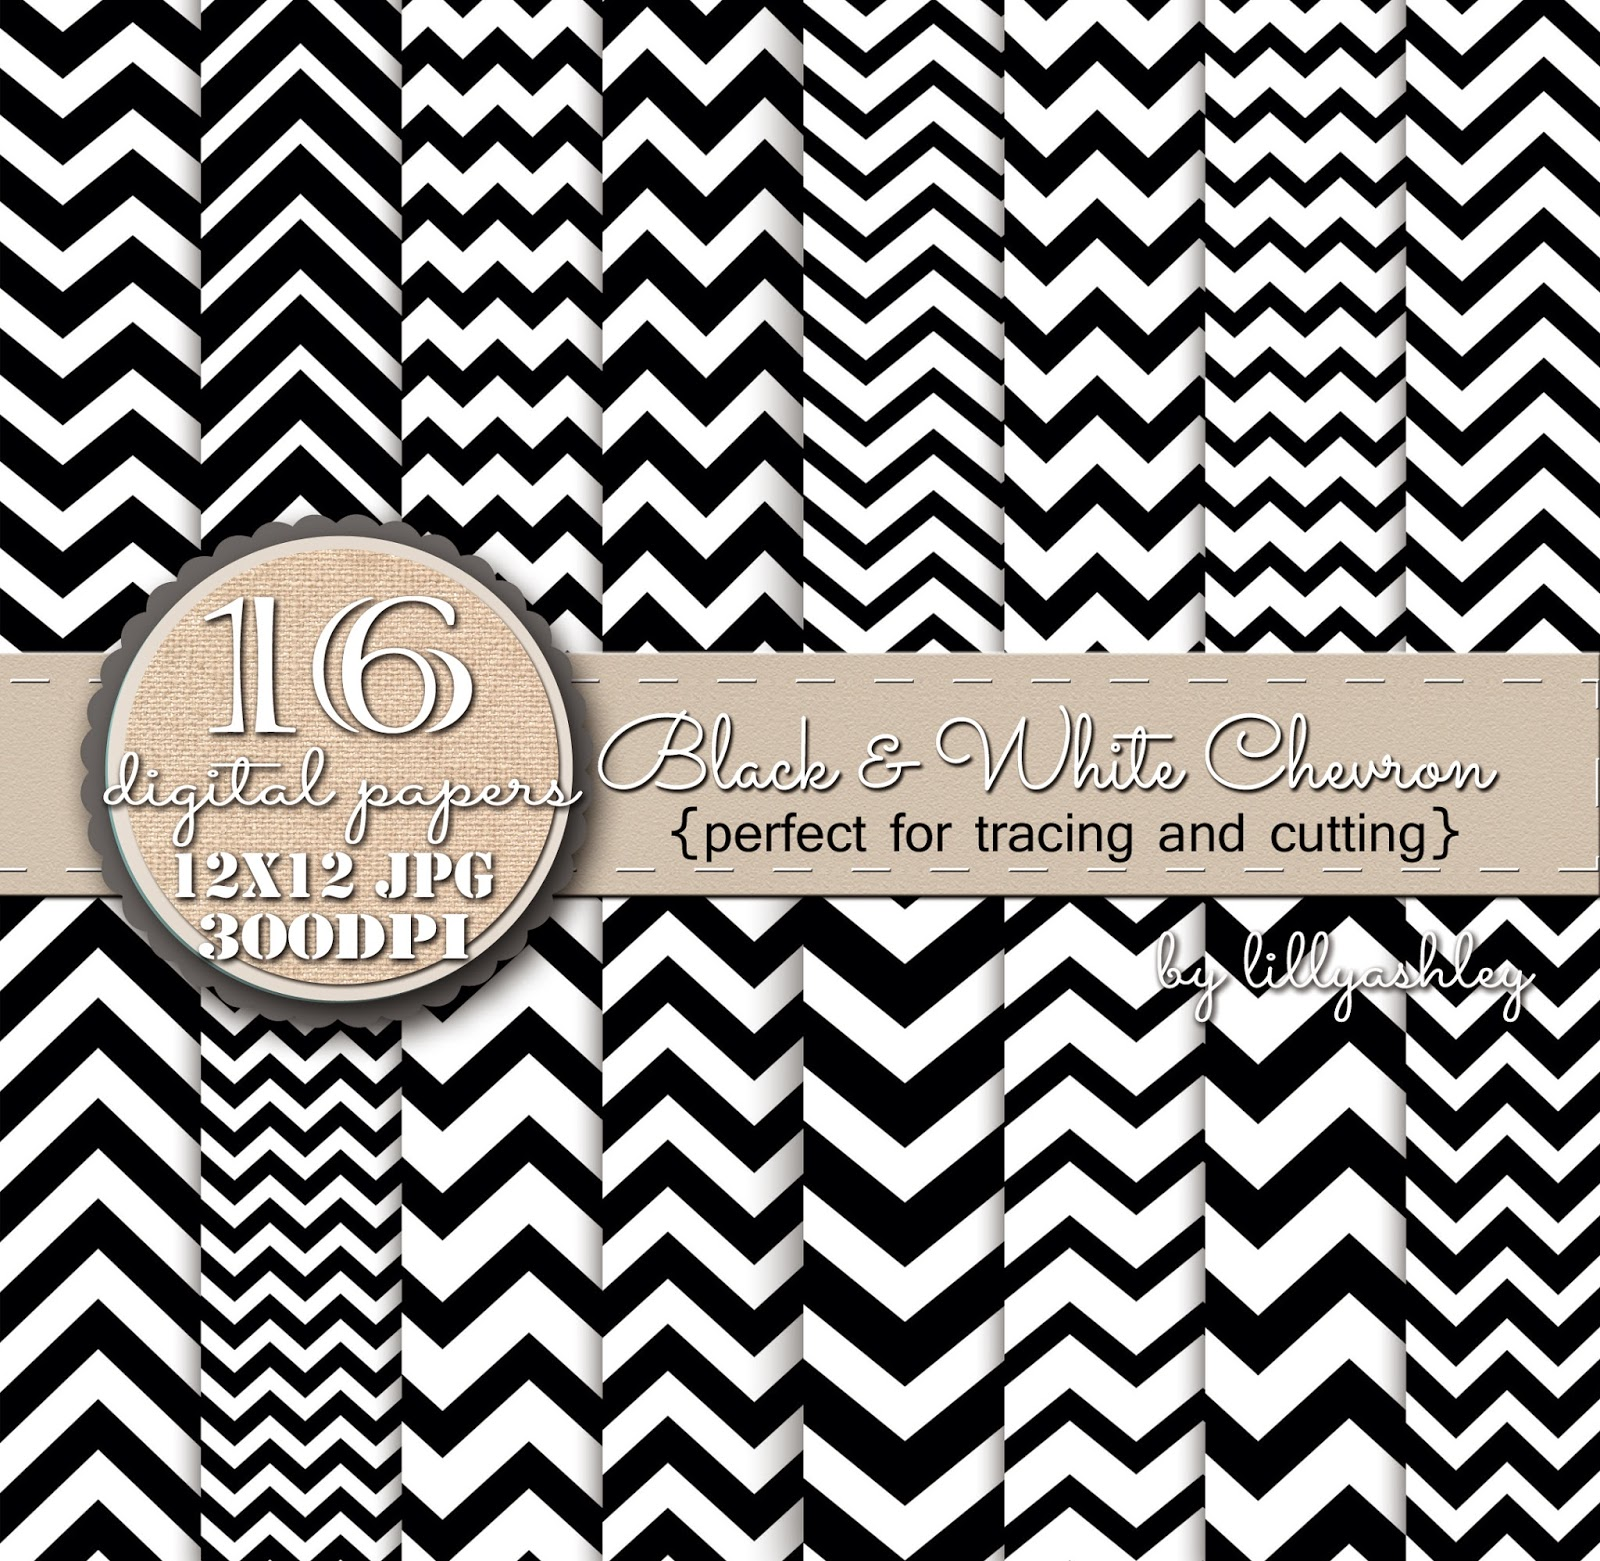 https://www.etsy.com/listing/220106385/black-white-chevron-digital-paper-pack?ref=shop_home_active_1